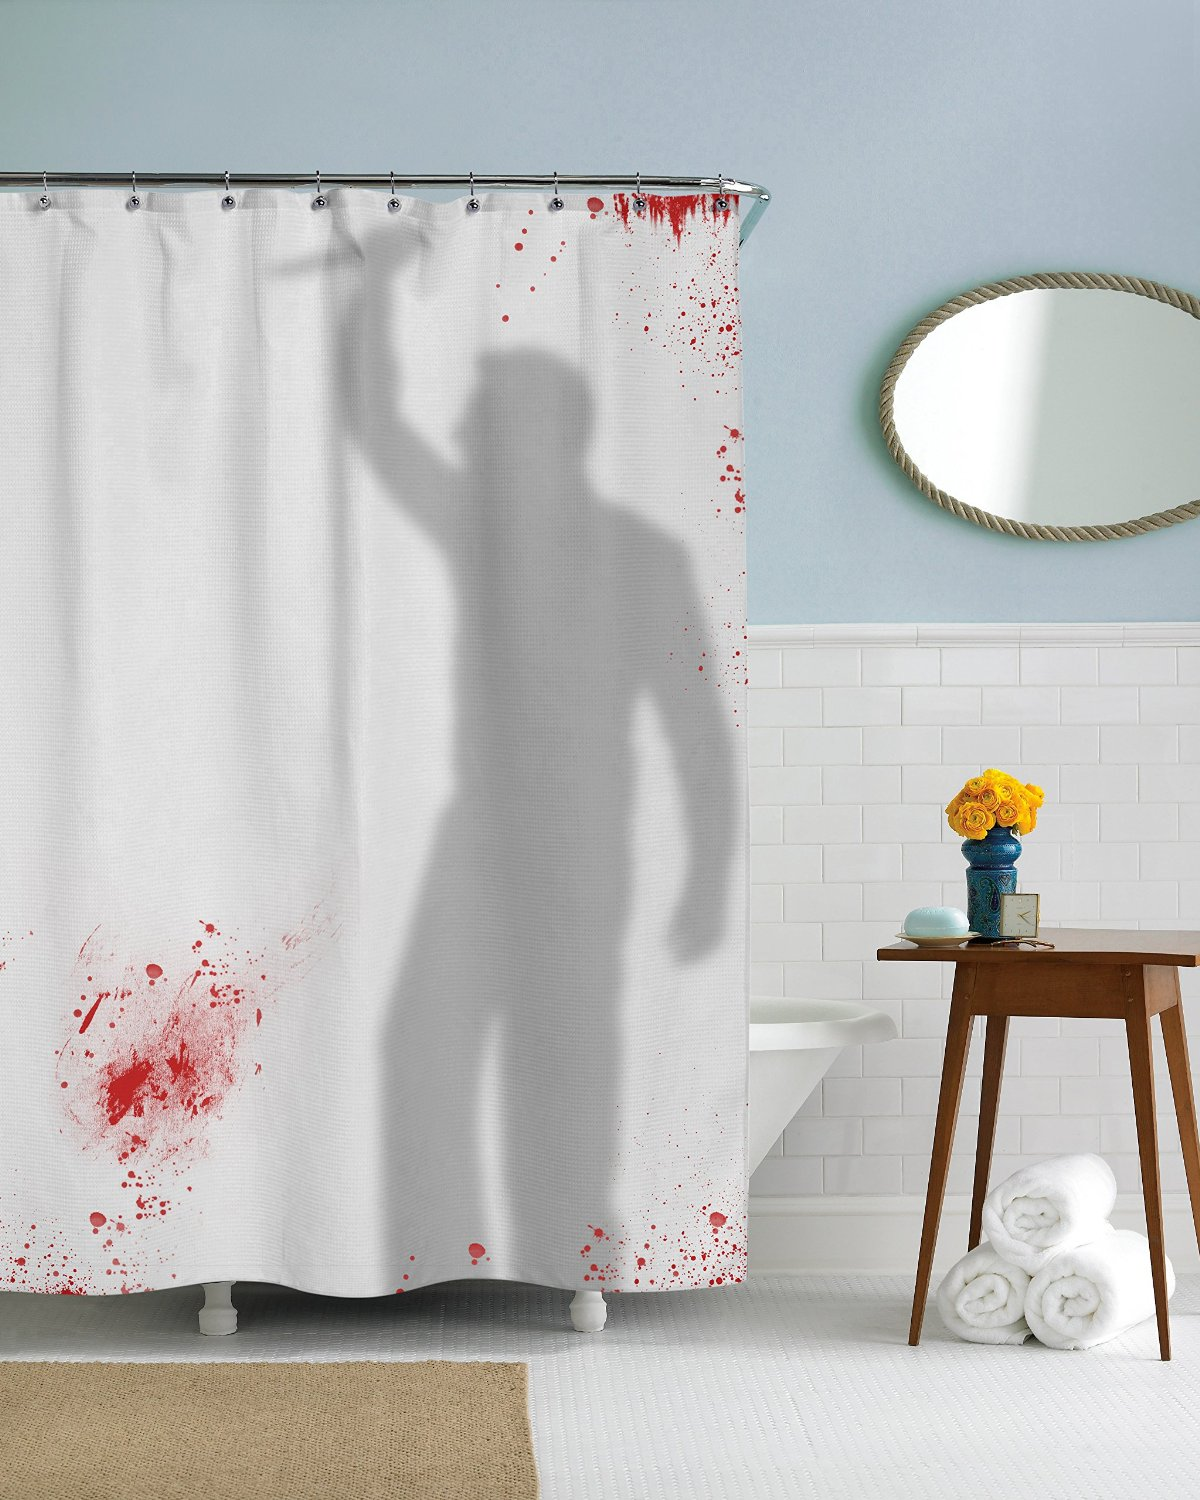 Psycho Killer Shower Curtain